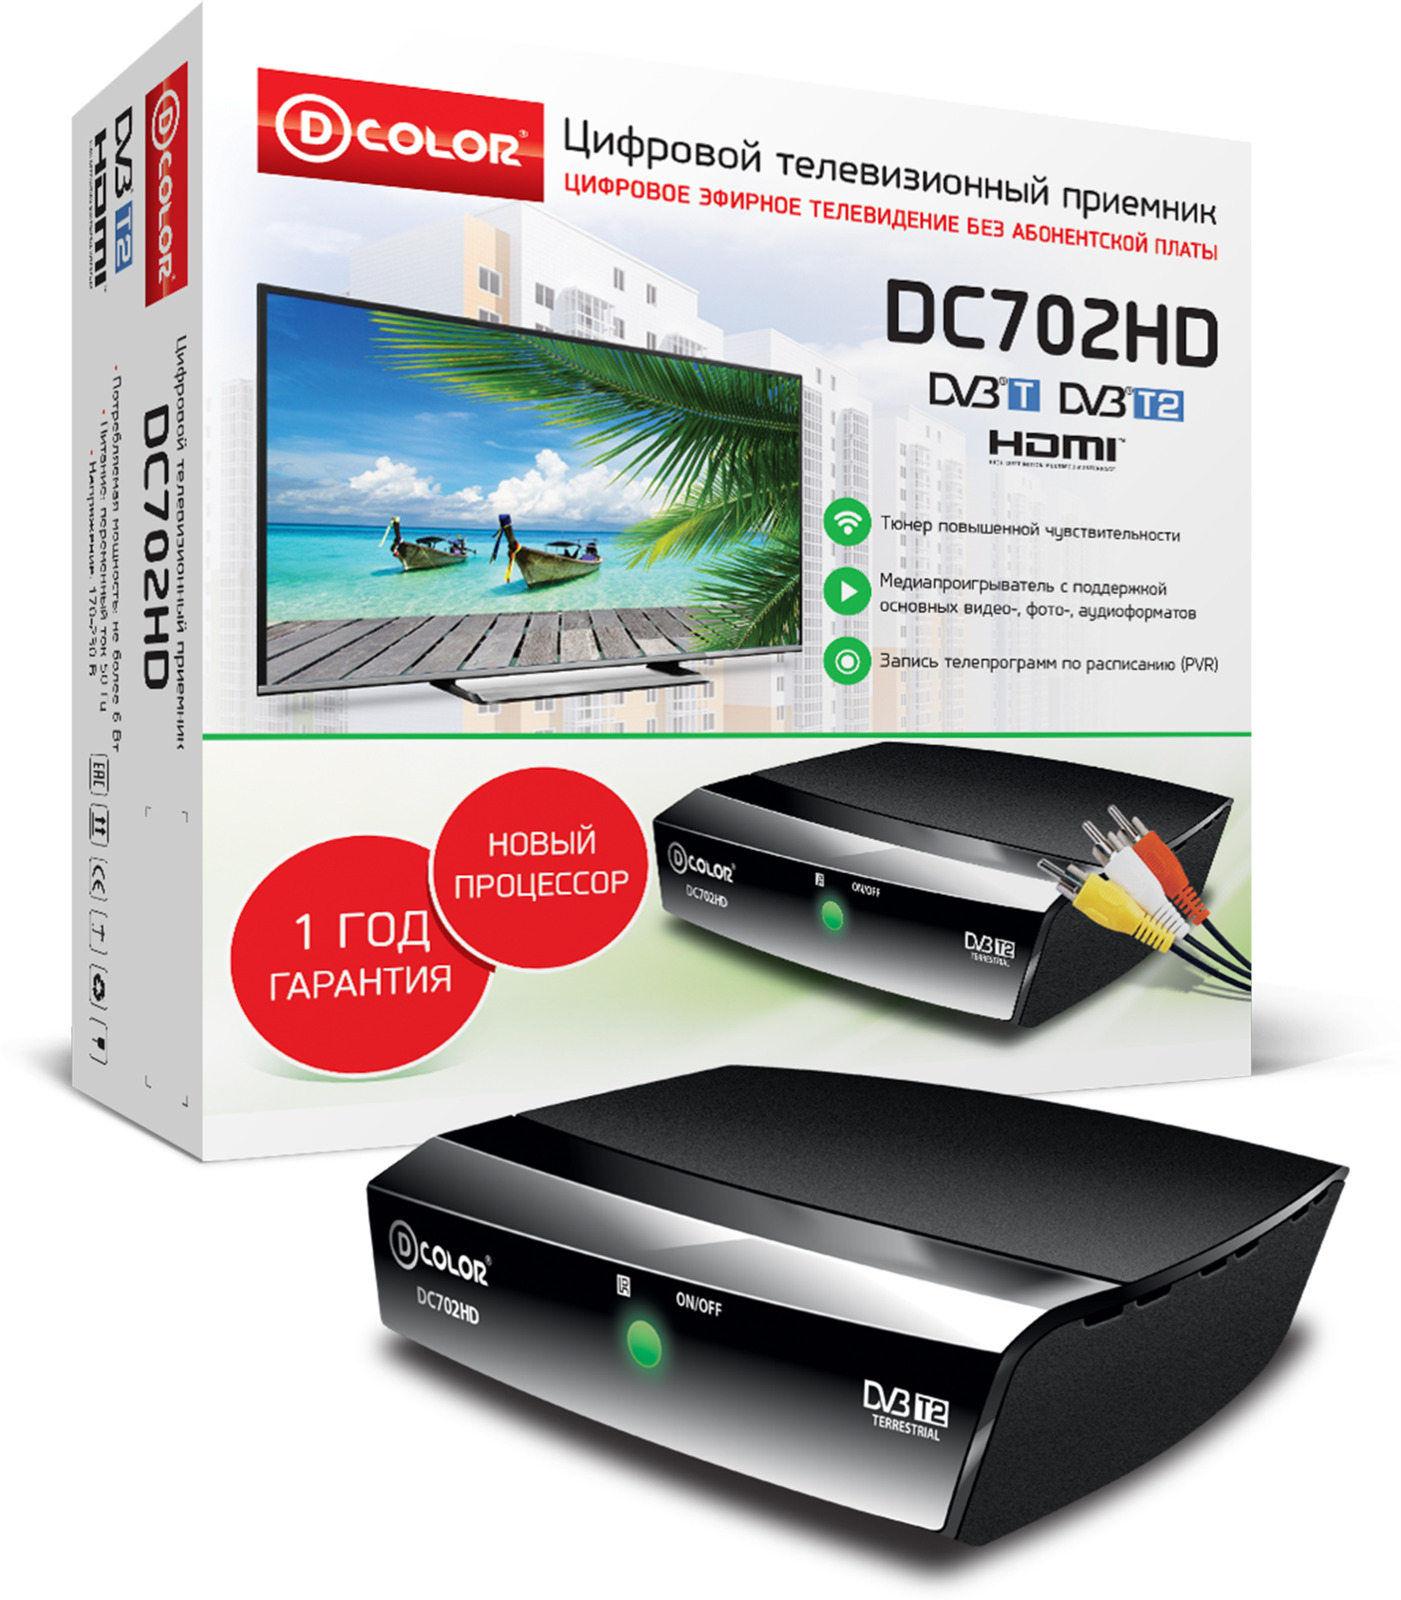 ТВ ресивер D-Color DC702HD тв тюнер якутск